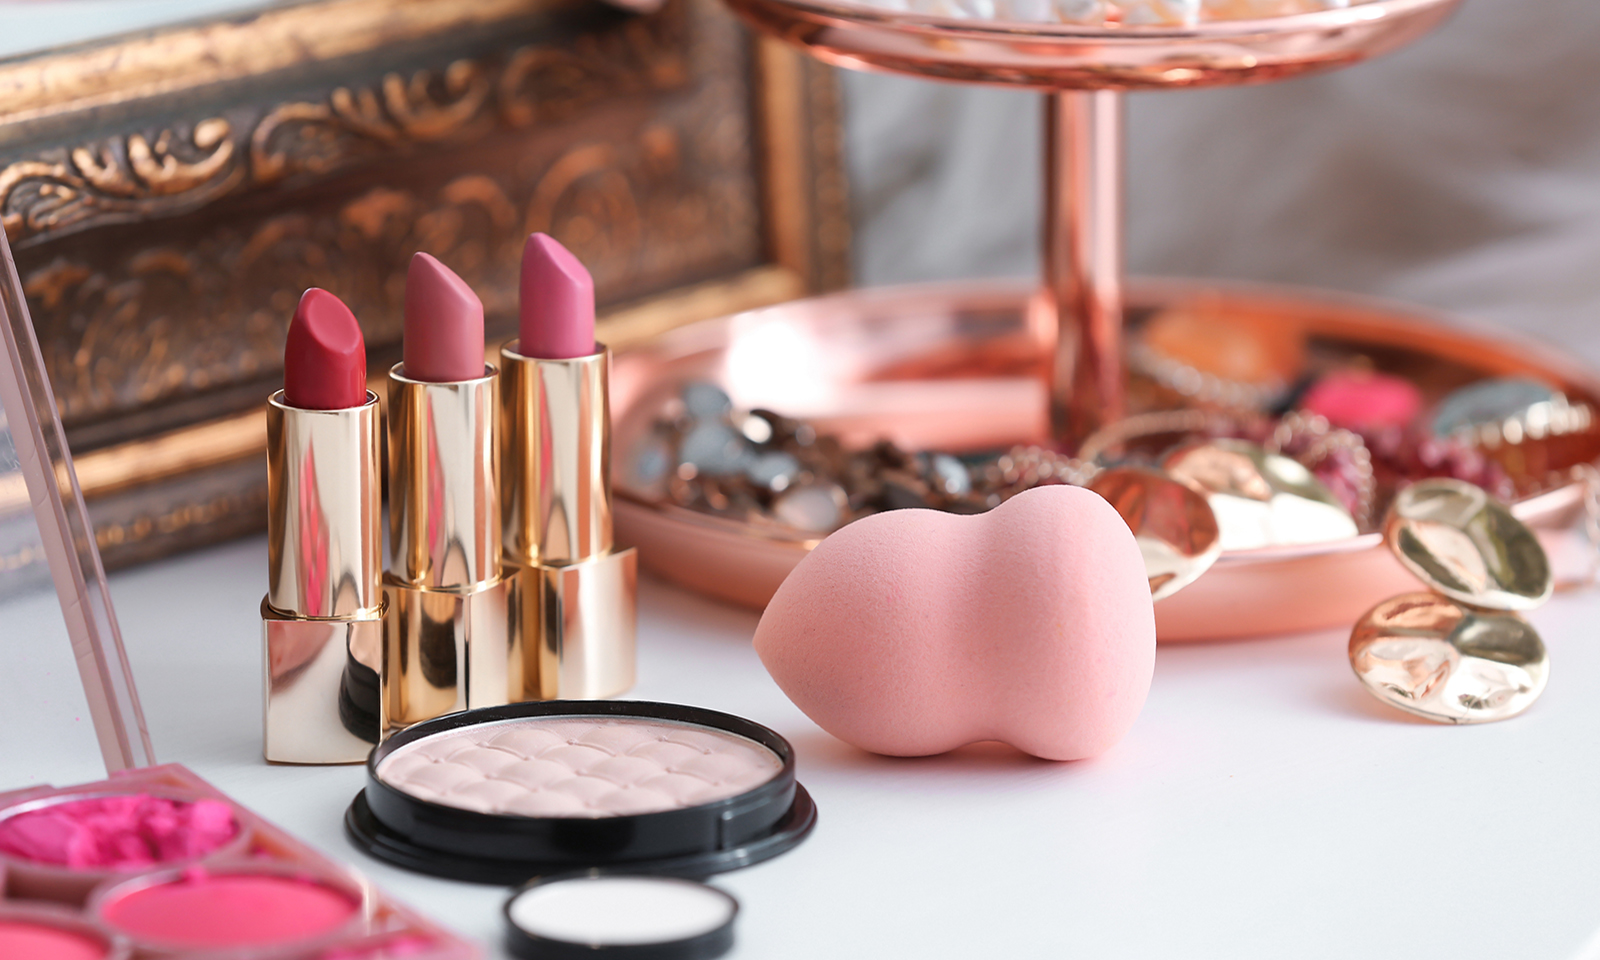 how-to-drive-traffic-to-your-beauty-blog-website-beauty-items-together-on-table